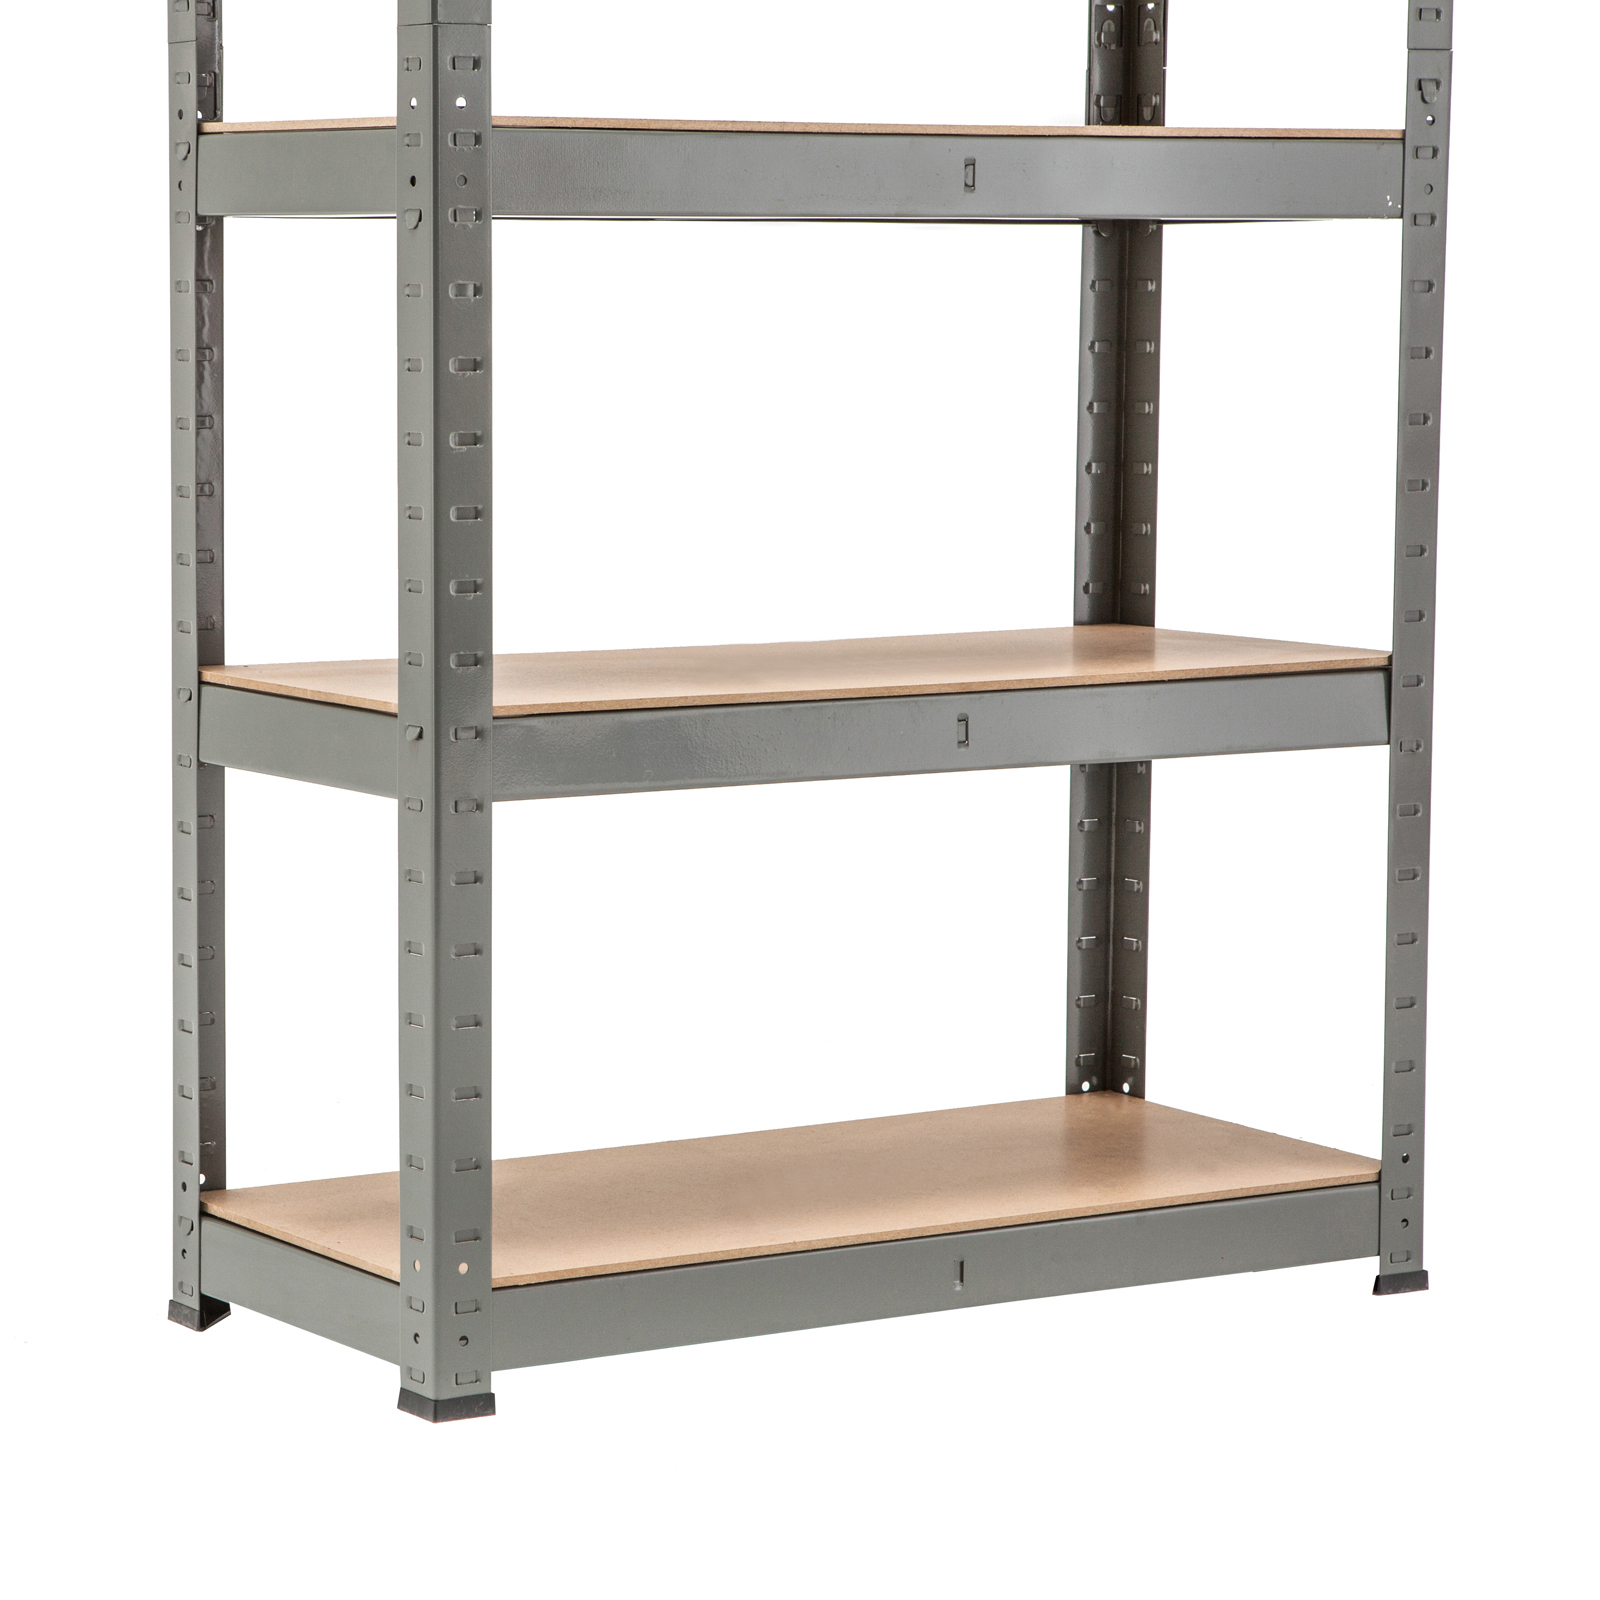 how to make garage shelving unit